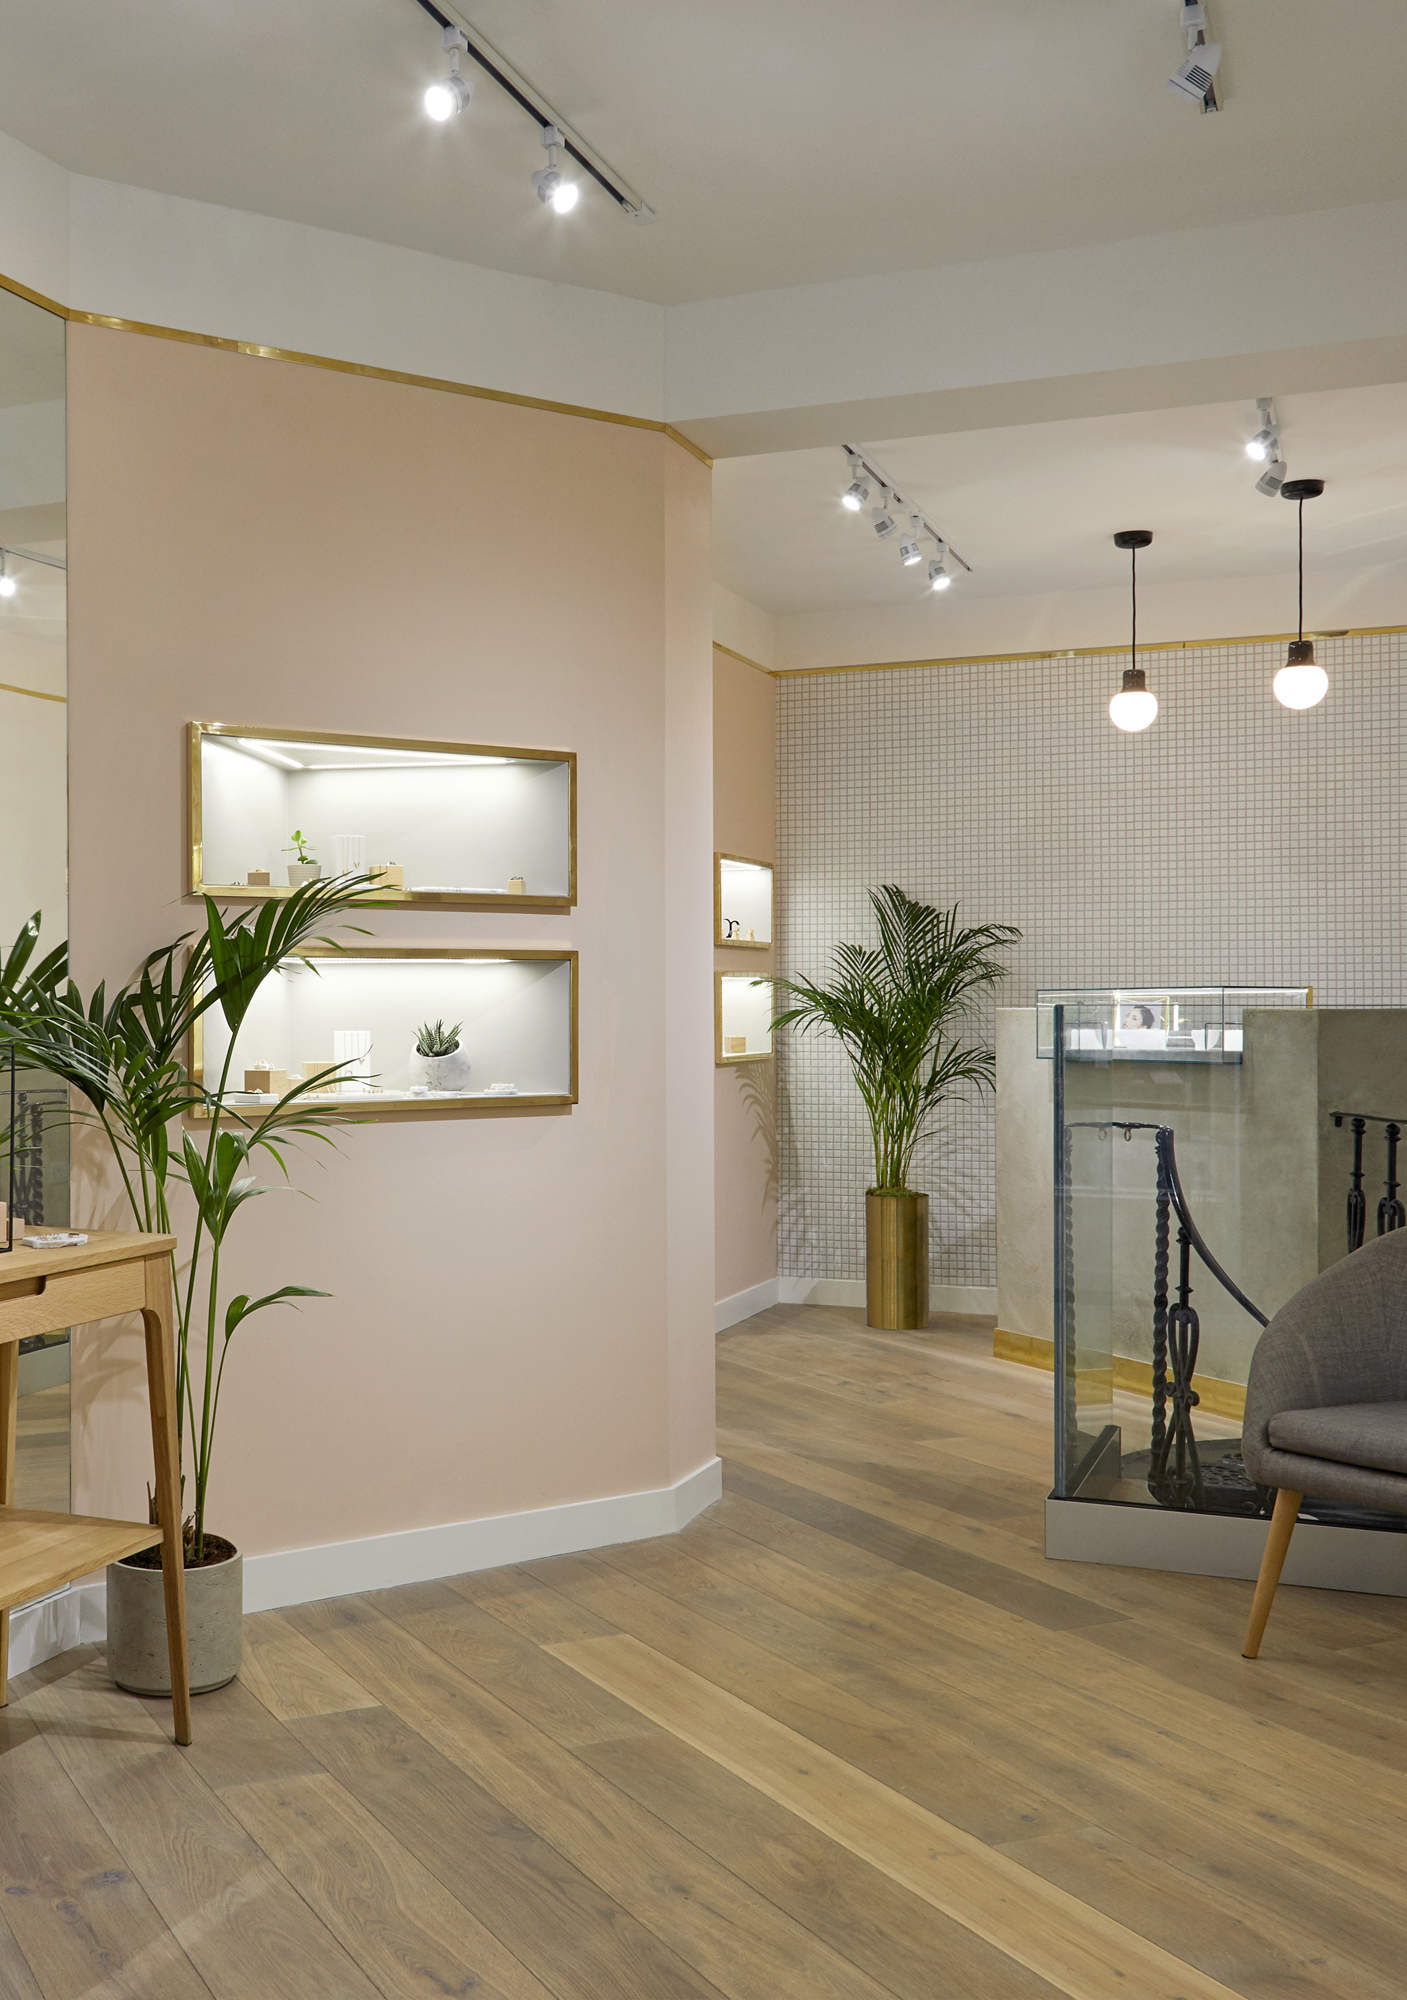 House of Sylphina commercial interior design for Astrid and Miyu flagship, London.